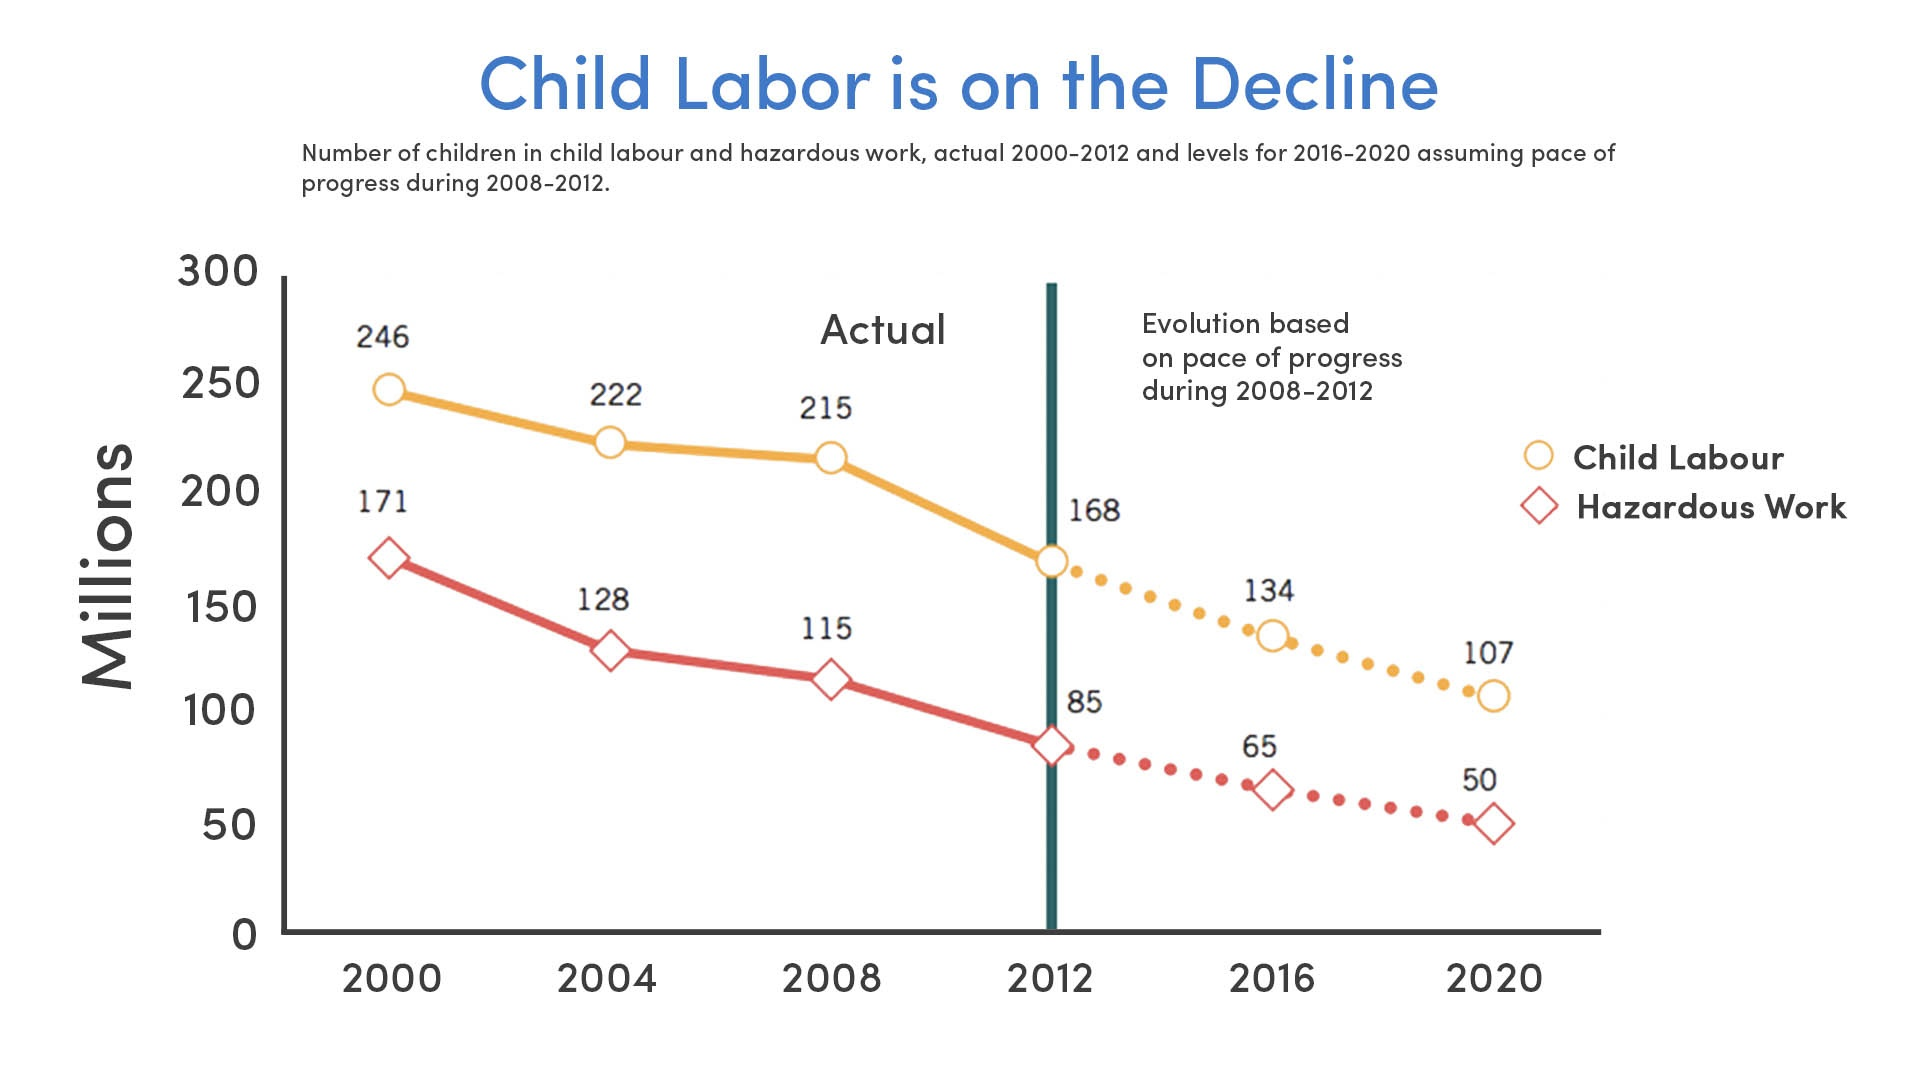 Child Labor on the Decline